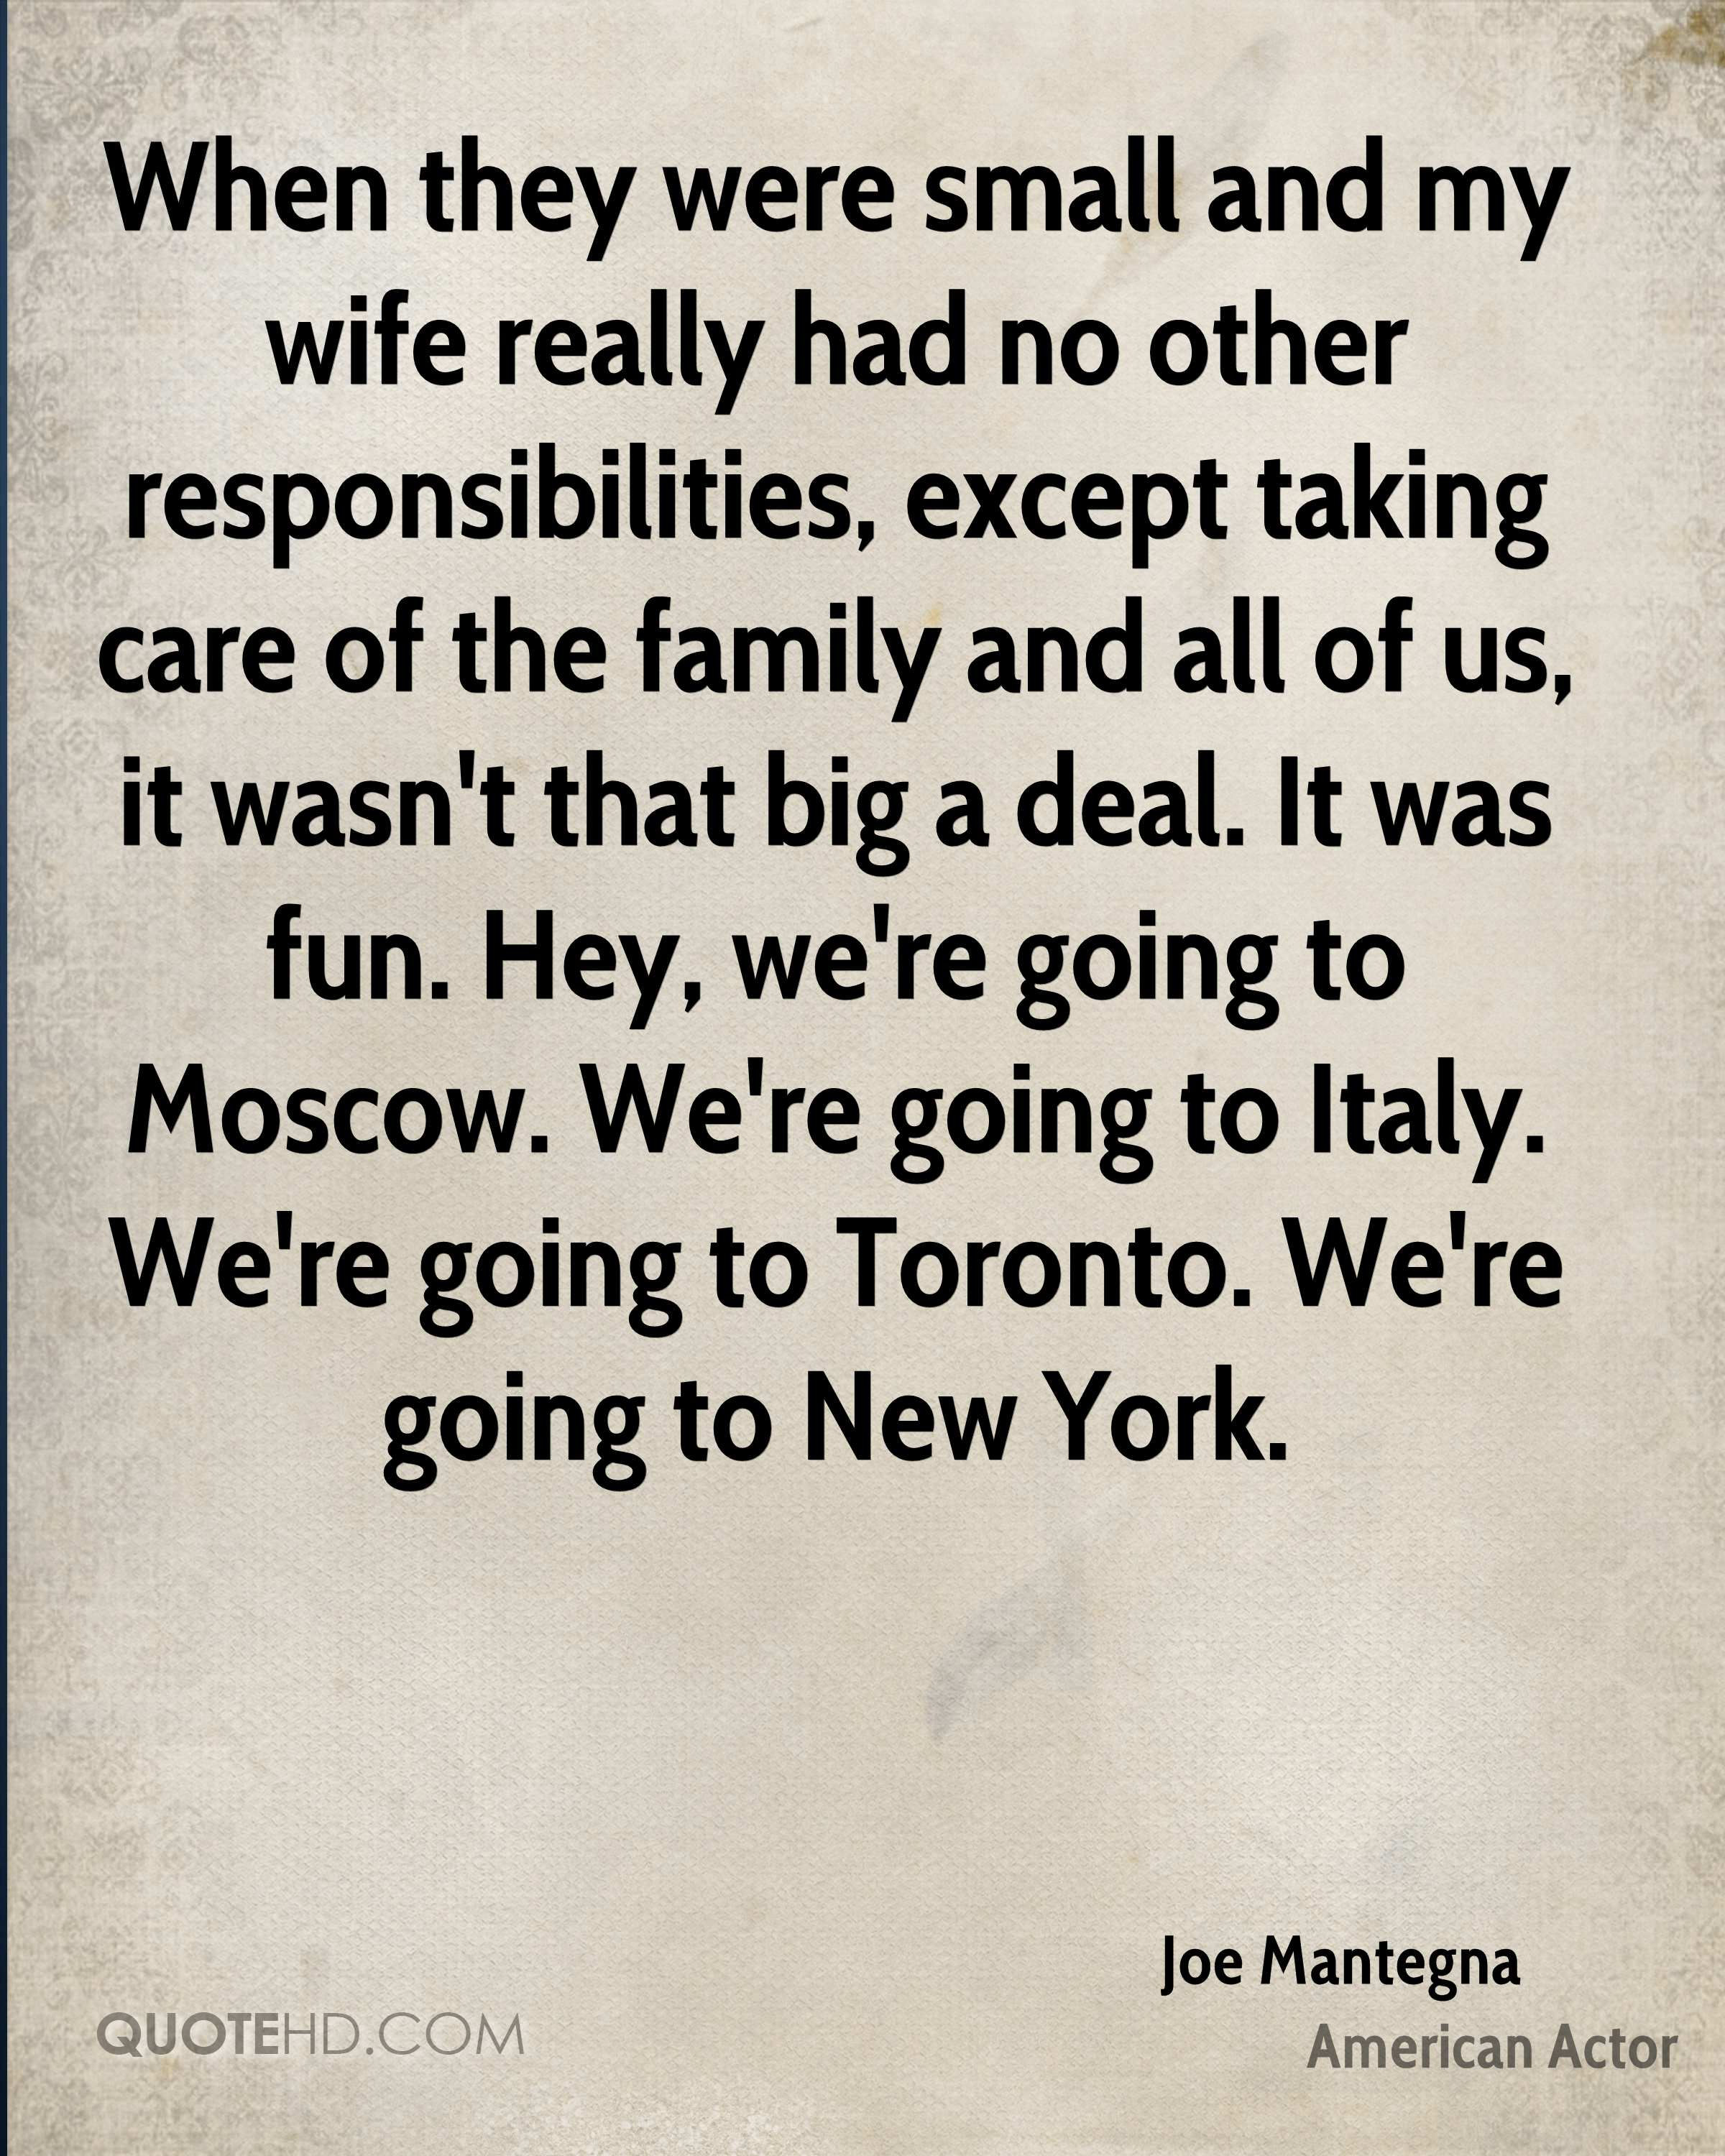 When they were small and my wife really had no other responsibilities, except taking care of the family and all of us, it wasn't that big a deal. It was fun. Hey, we're going to Moscow. We're going to Italy. We're going to Toronto. We're going to New York.